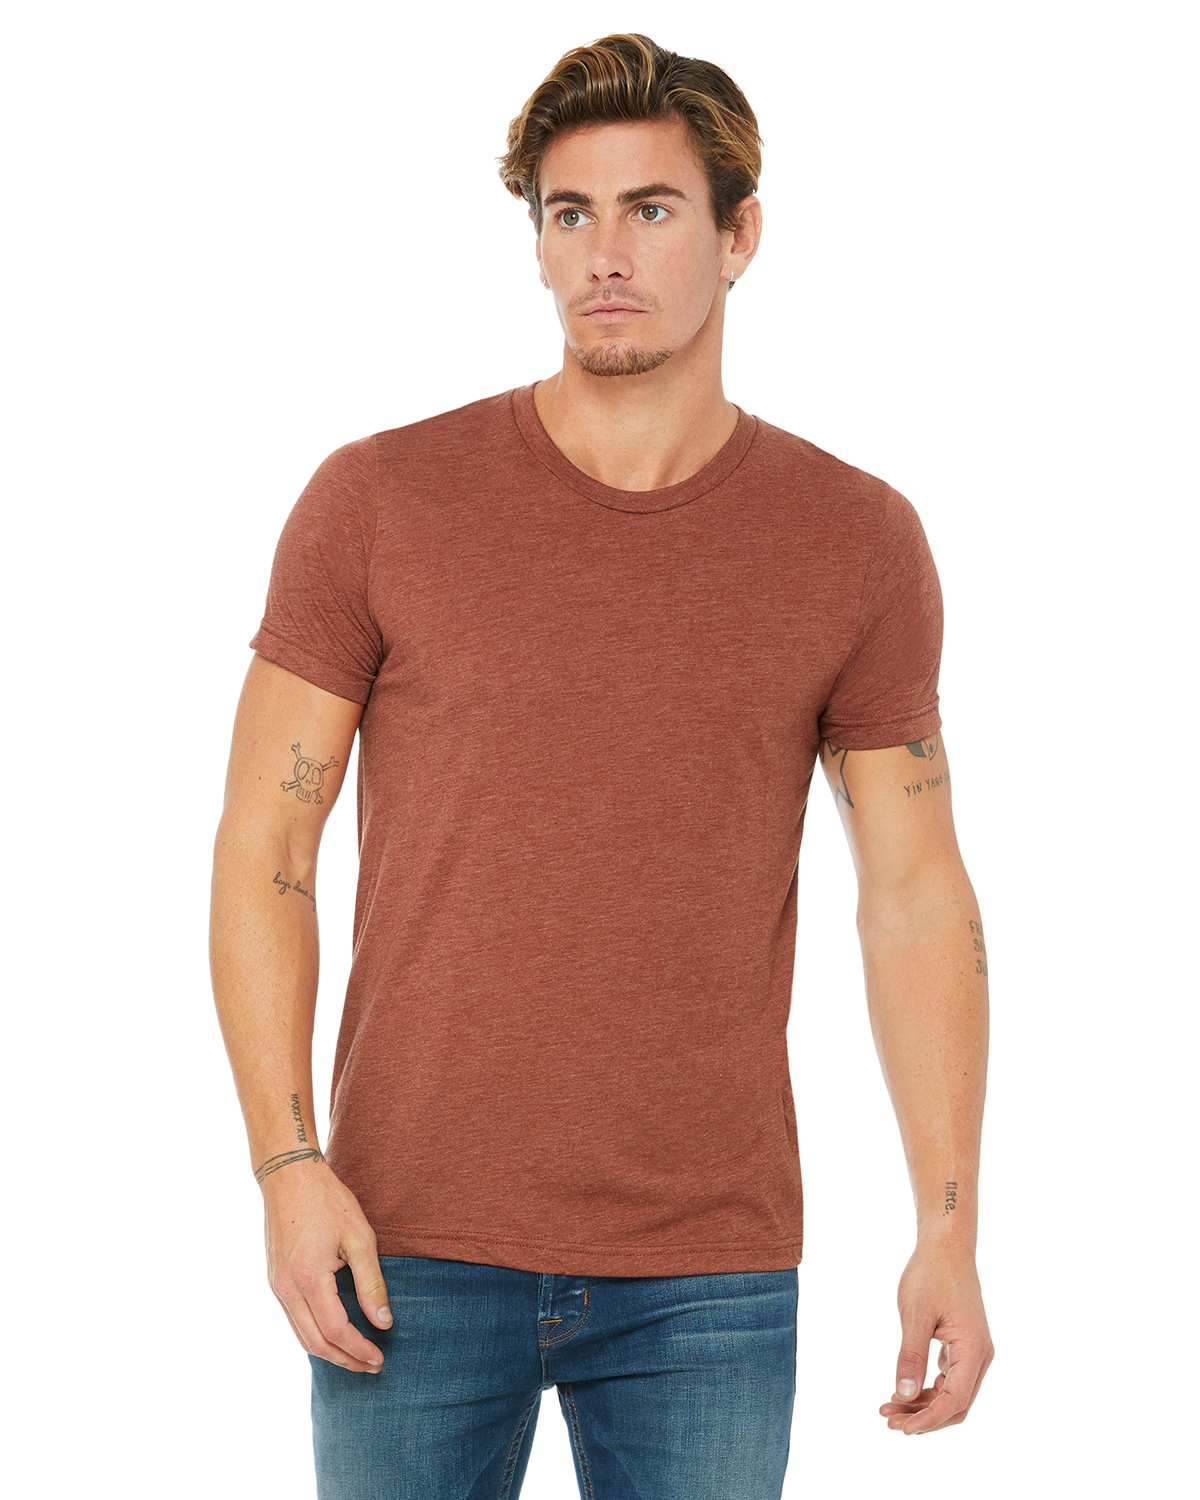 Canvas Triblend Short-Sleeve T-Shirt 3413C Bella